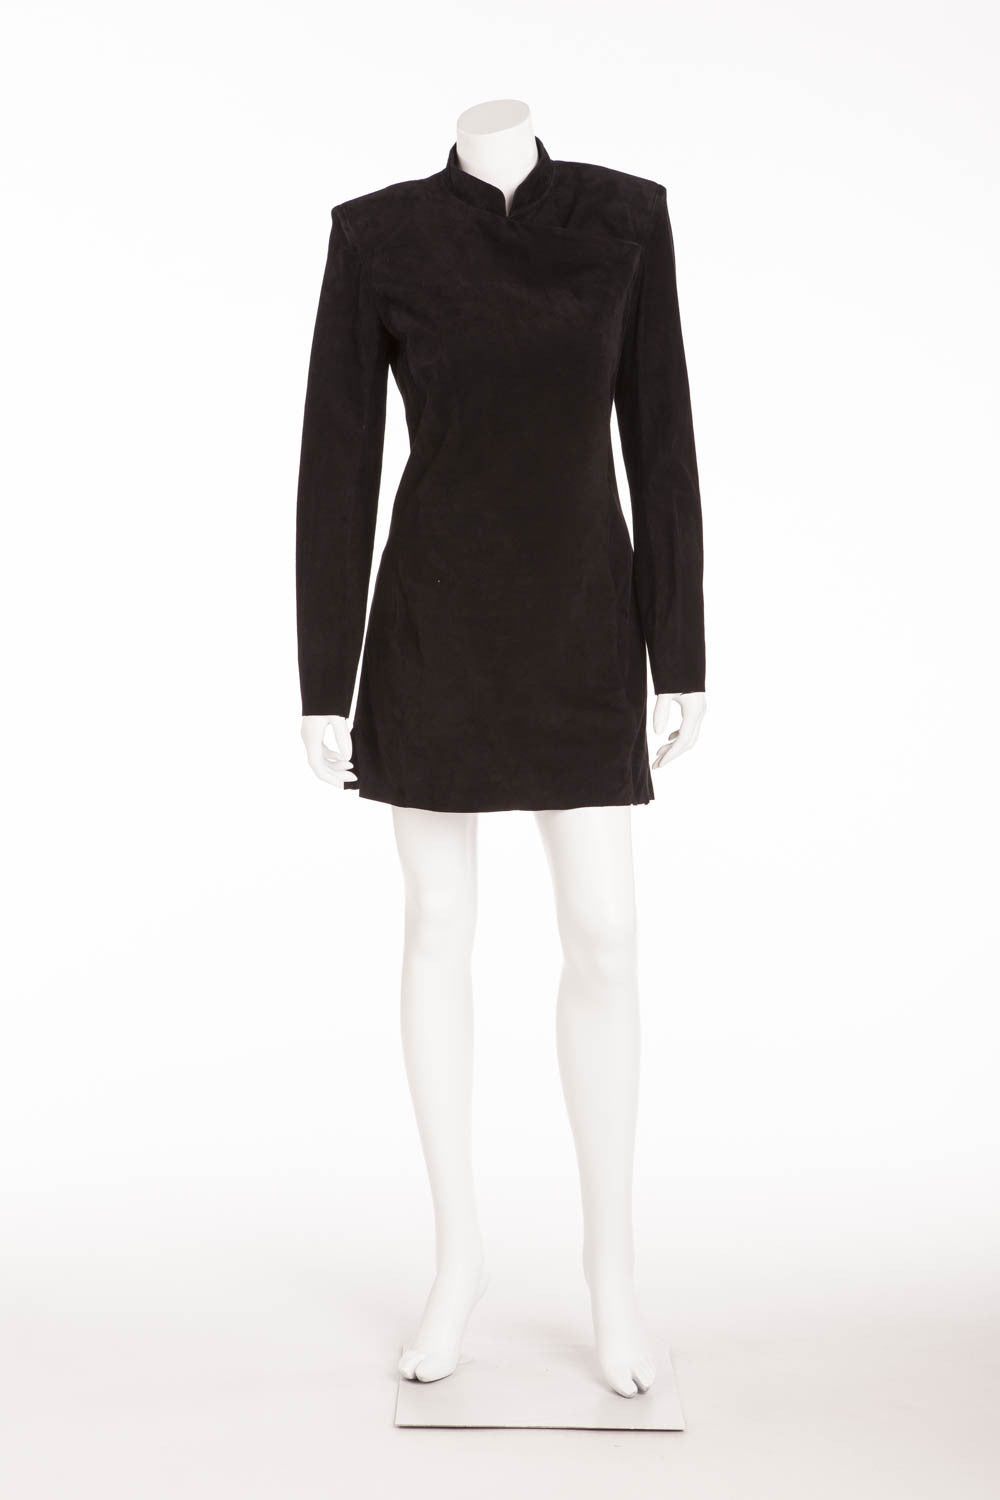 Balmain - NWT Long Sleeve Suede Black Mini Dress - FR 40